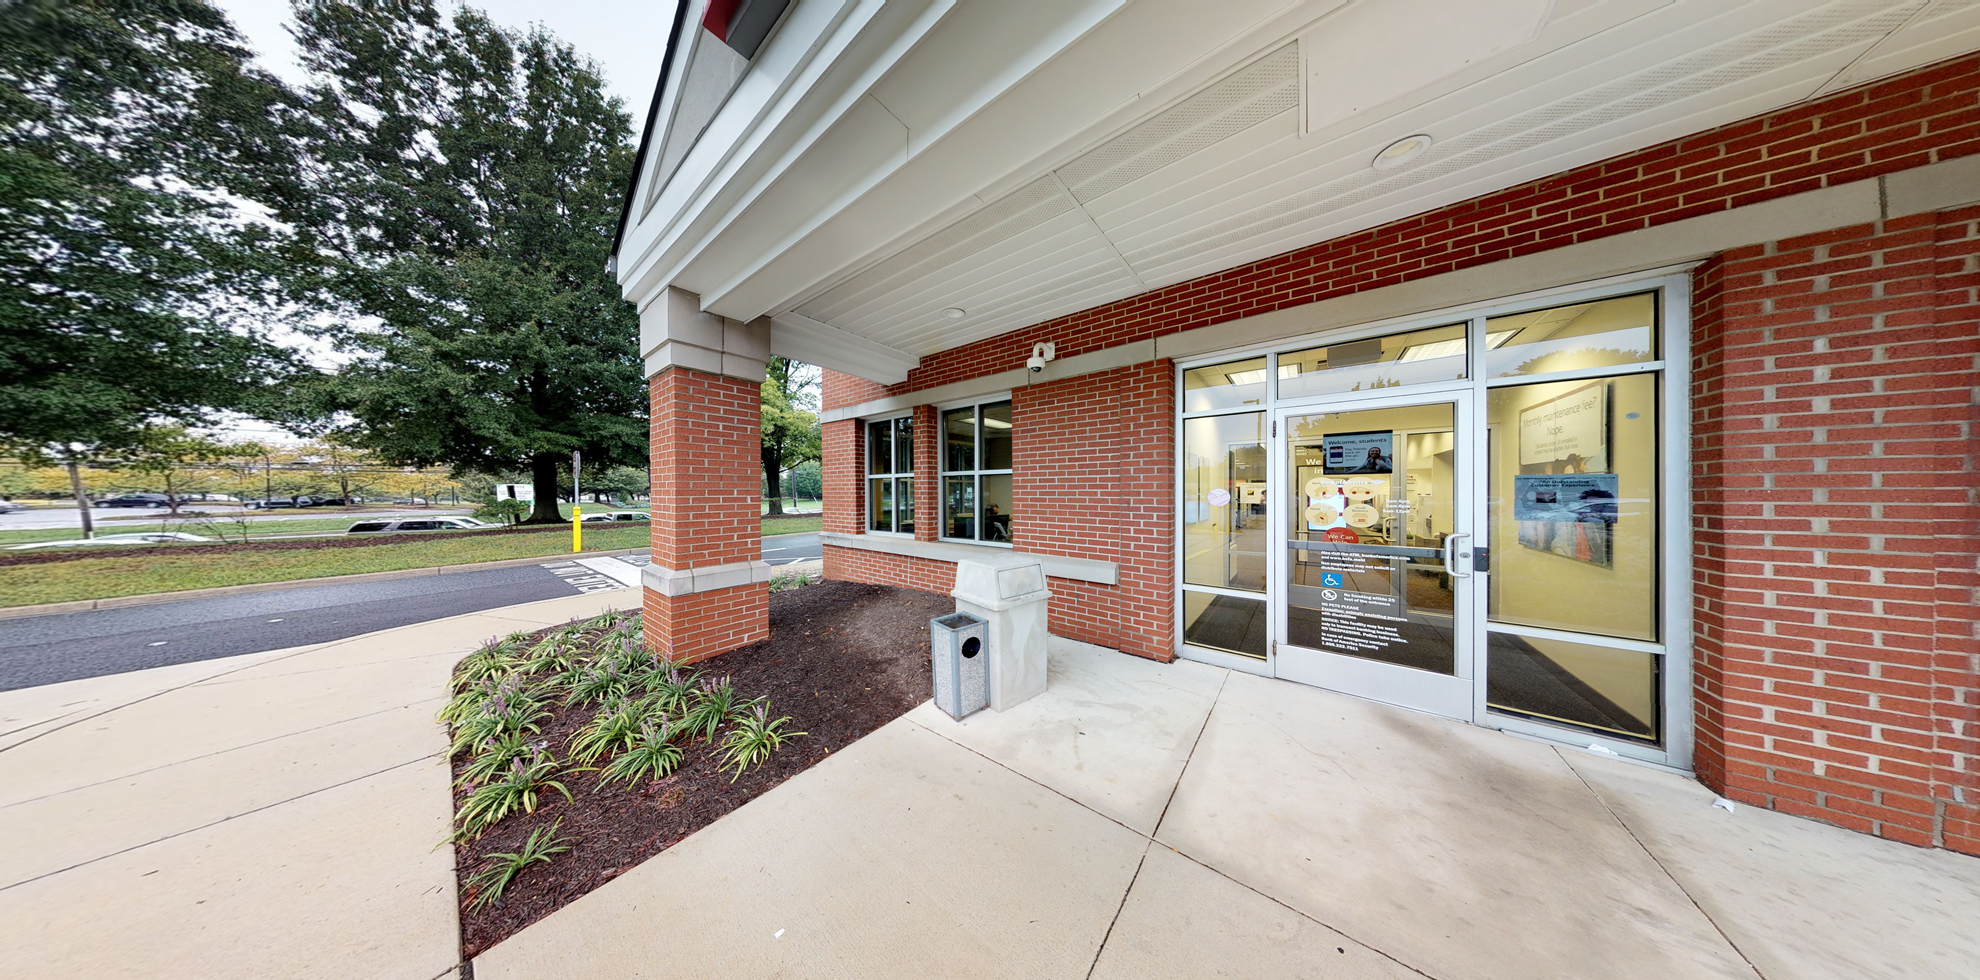 Bank of America financial center with drive-thru ATM | 19707 Germantown Rd, Germantown, MD 20874